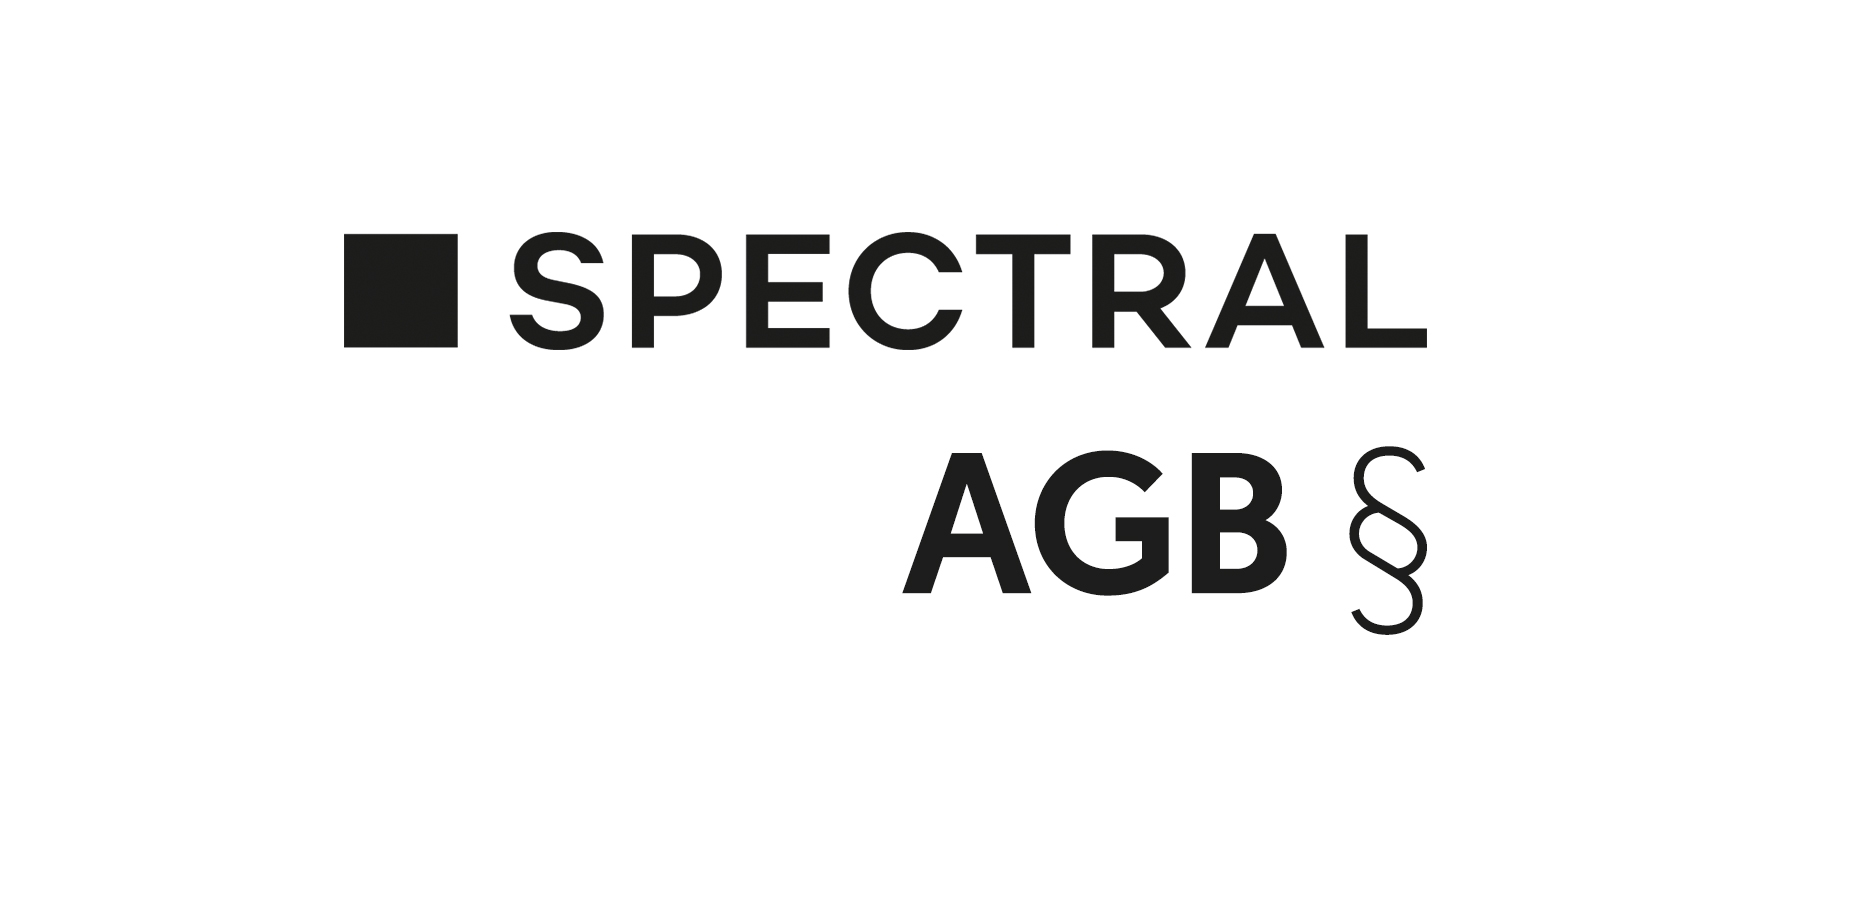 AGB - Spectral Audio Möbel GmbH